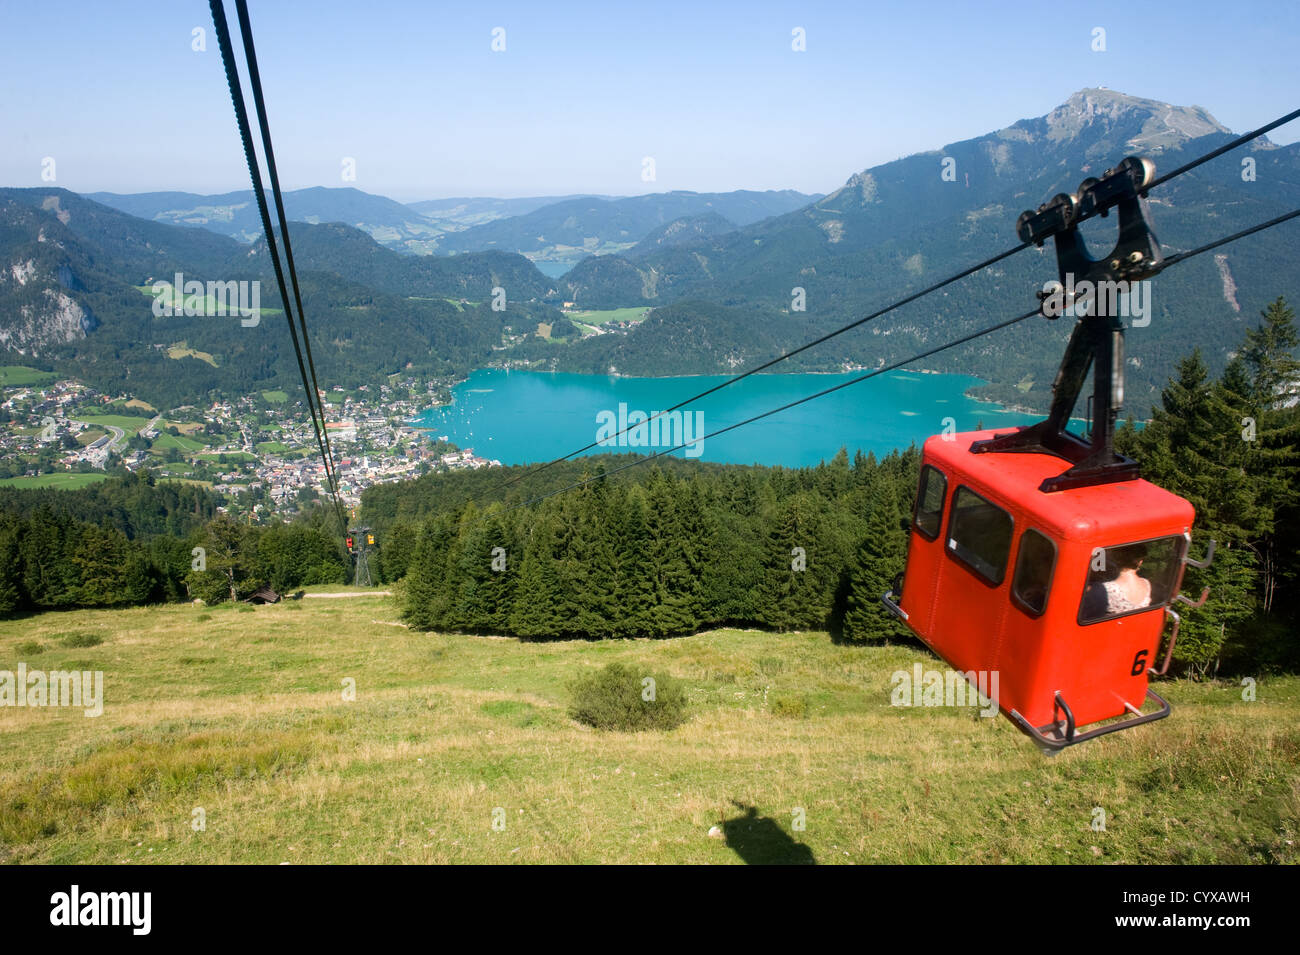 Cableway that goes on to the top of the zwölferhorn mountain near the Wolfgangsee in Austria - Stock Image